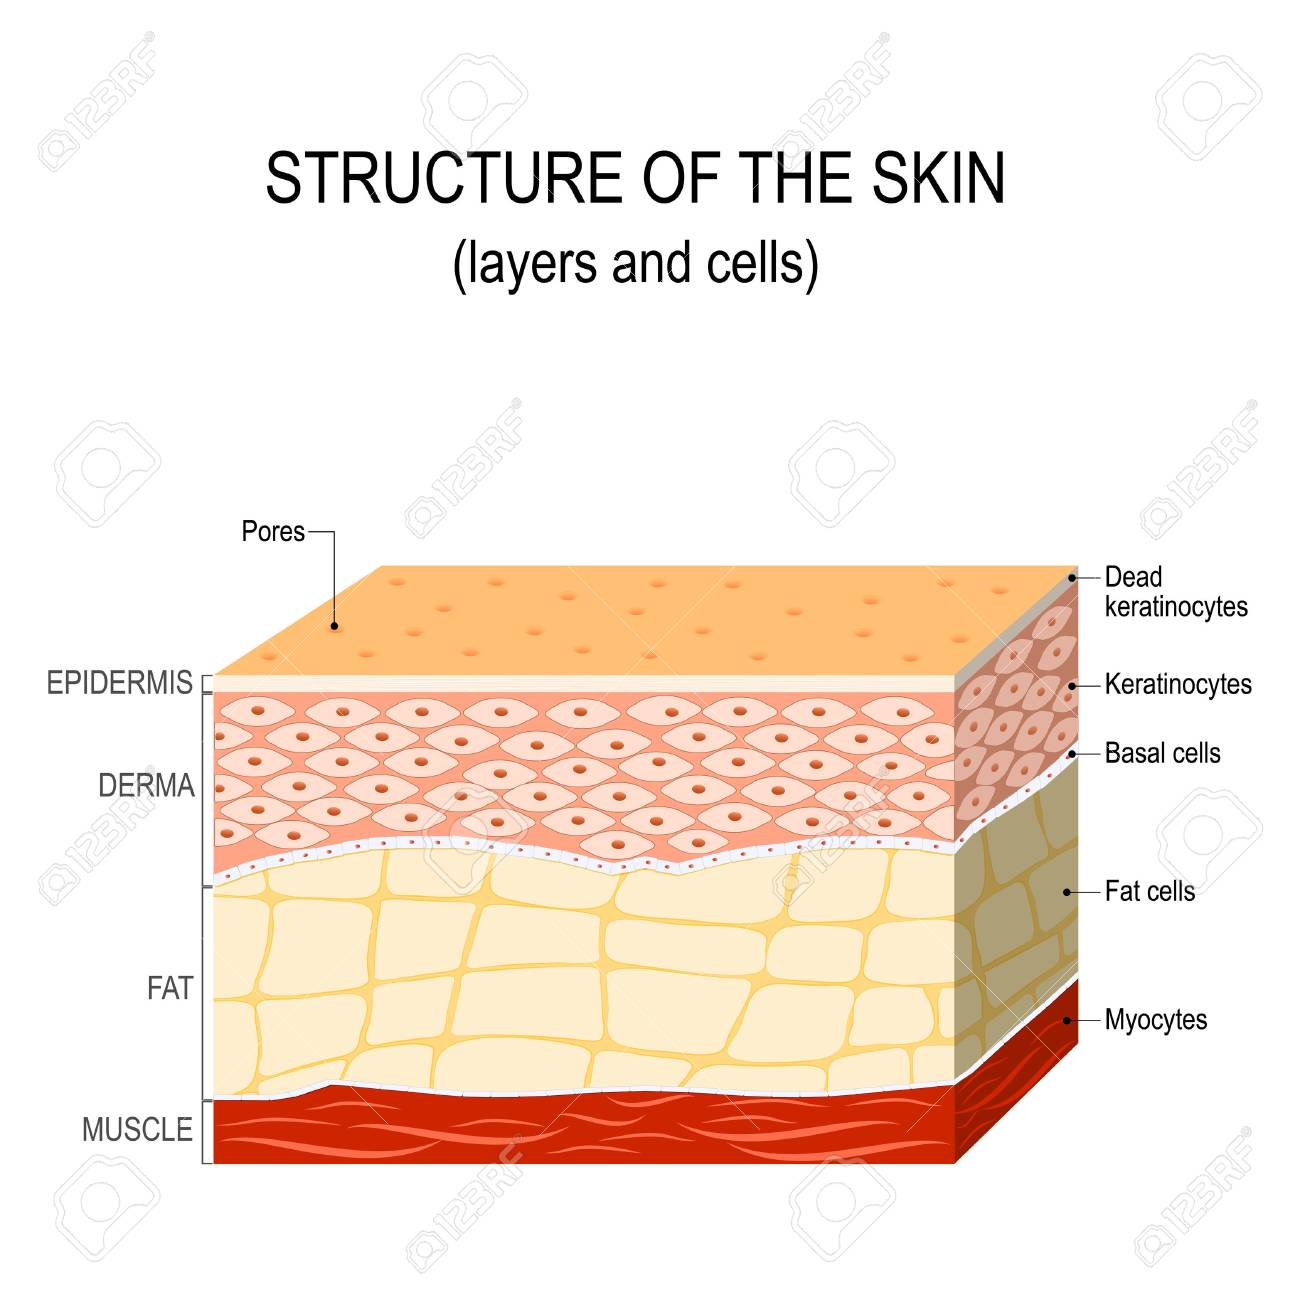 Structure Of The Human Skin Layers And Cells Royalty Free Cliparts